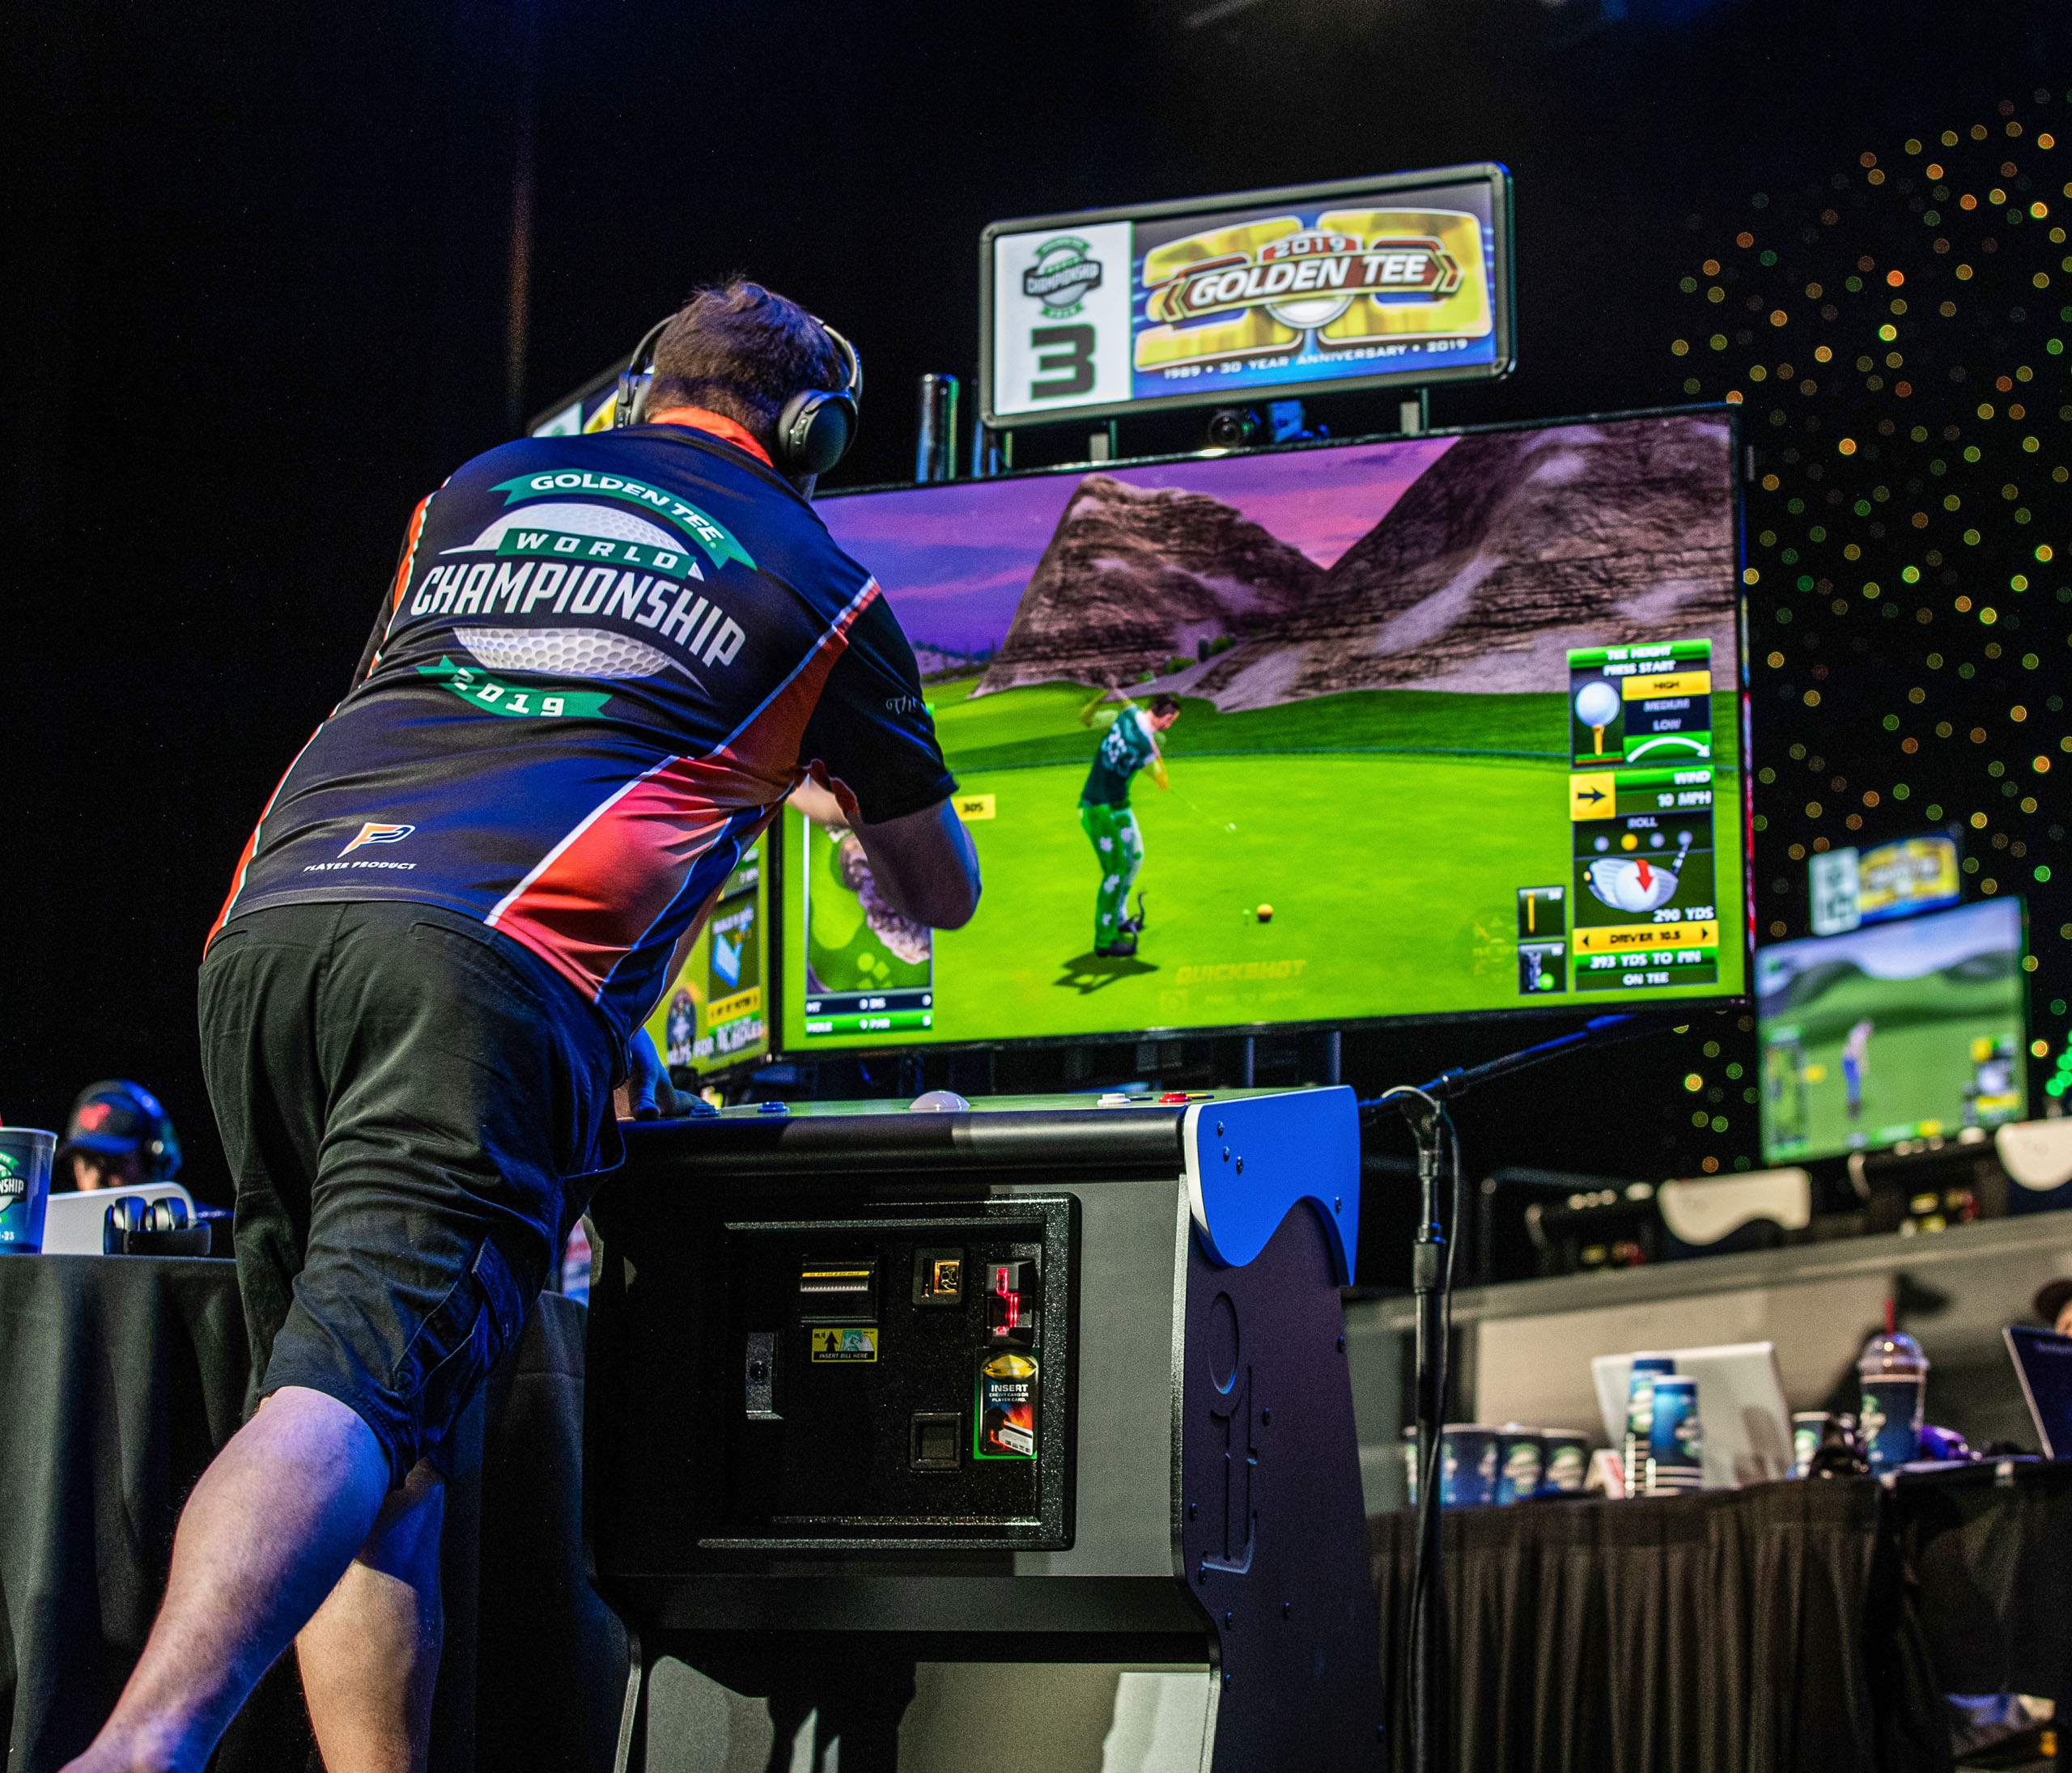 Beers, red numbers and extended follow-throughs: Stylistically, not much differs between your local pub and Golden Tee's grandest stages when it comes to 18 virtual holes. Photo courtesy of Incredible Technologies